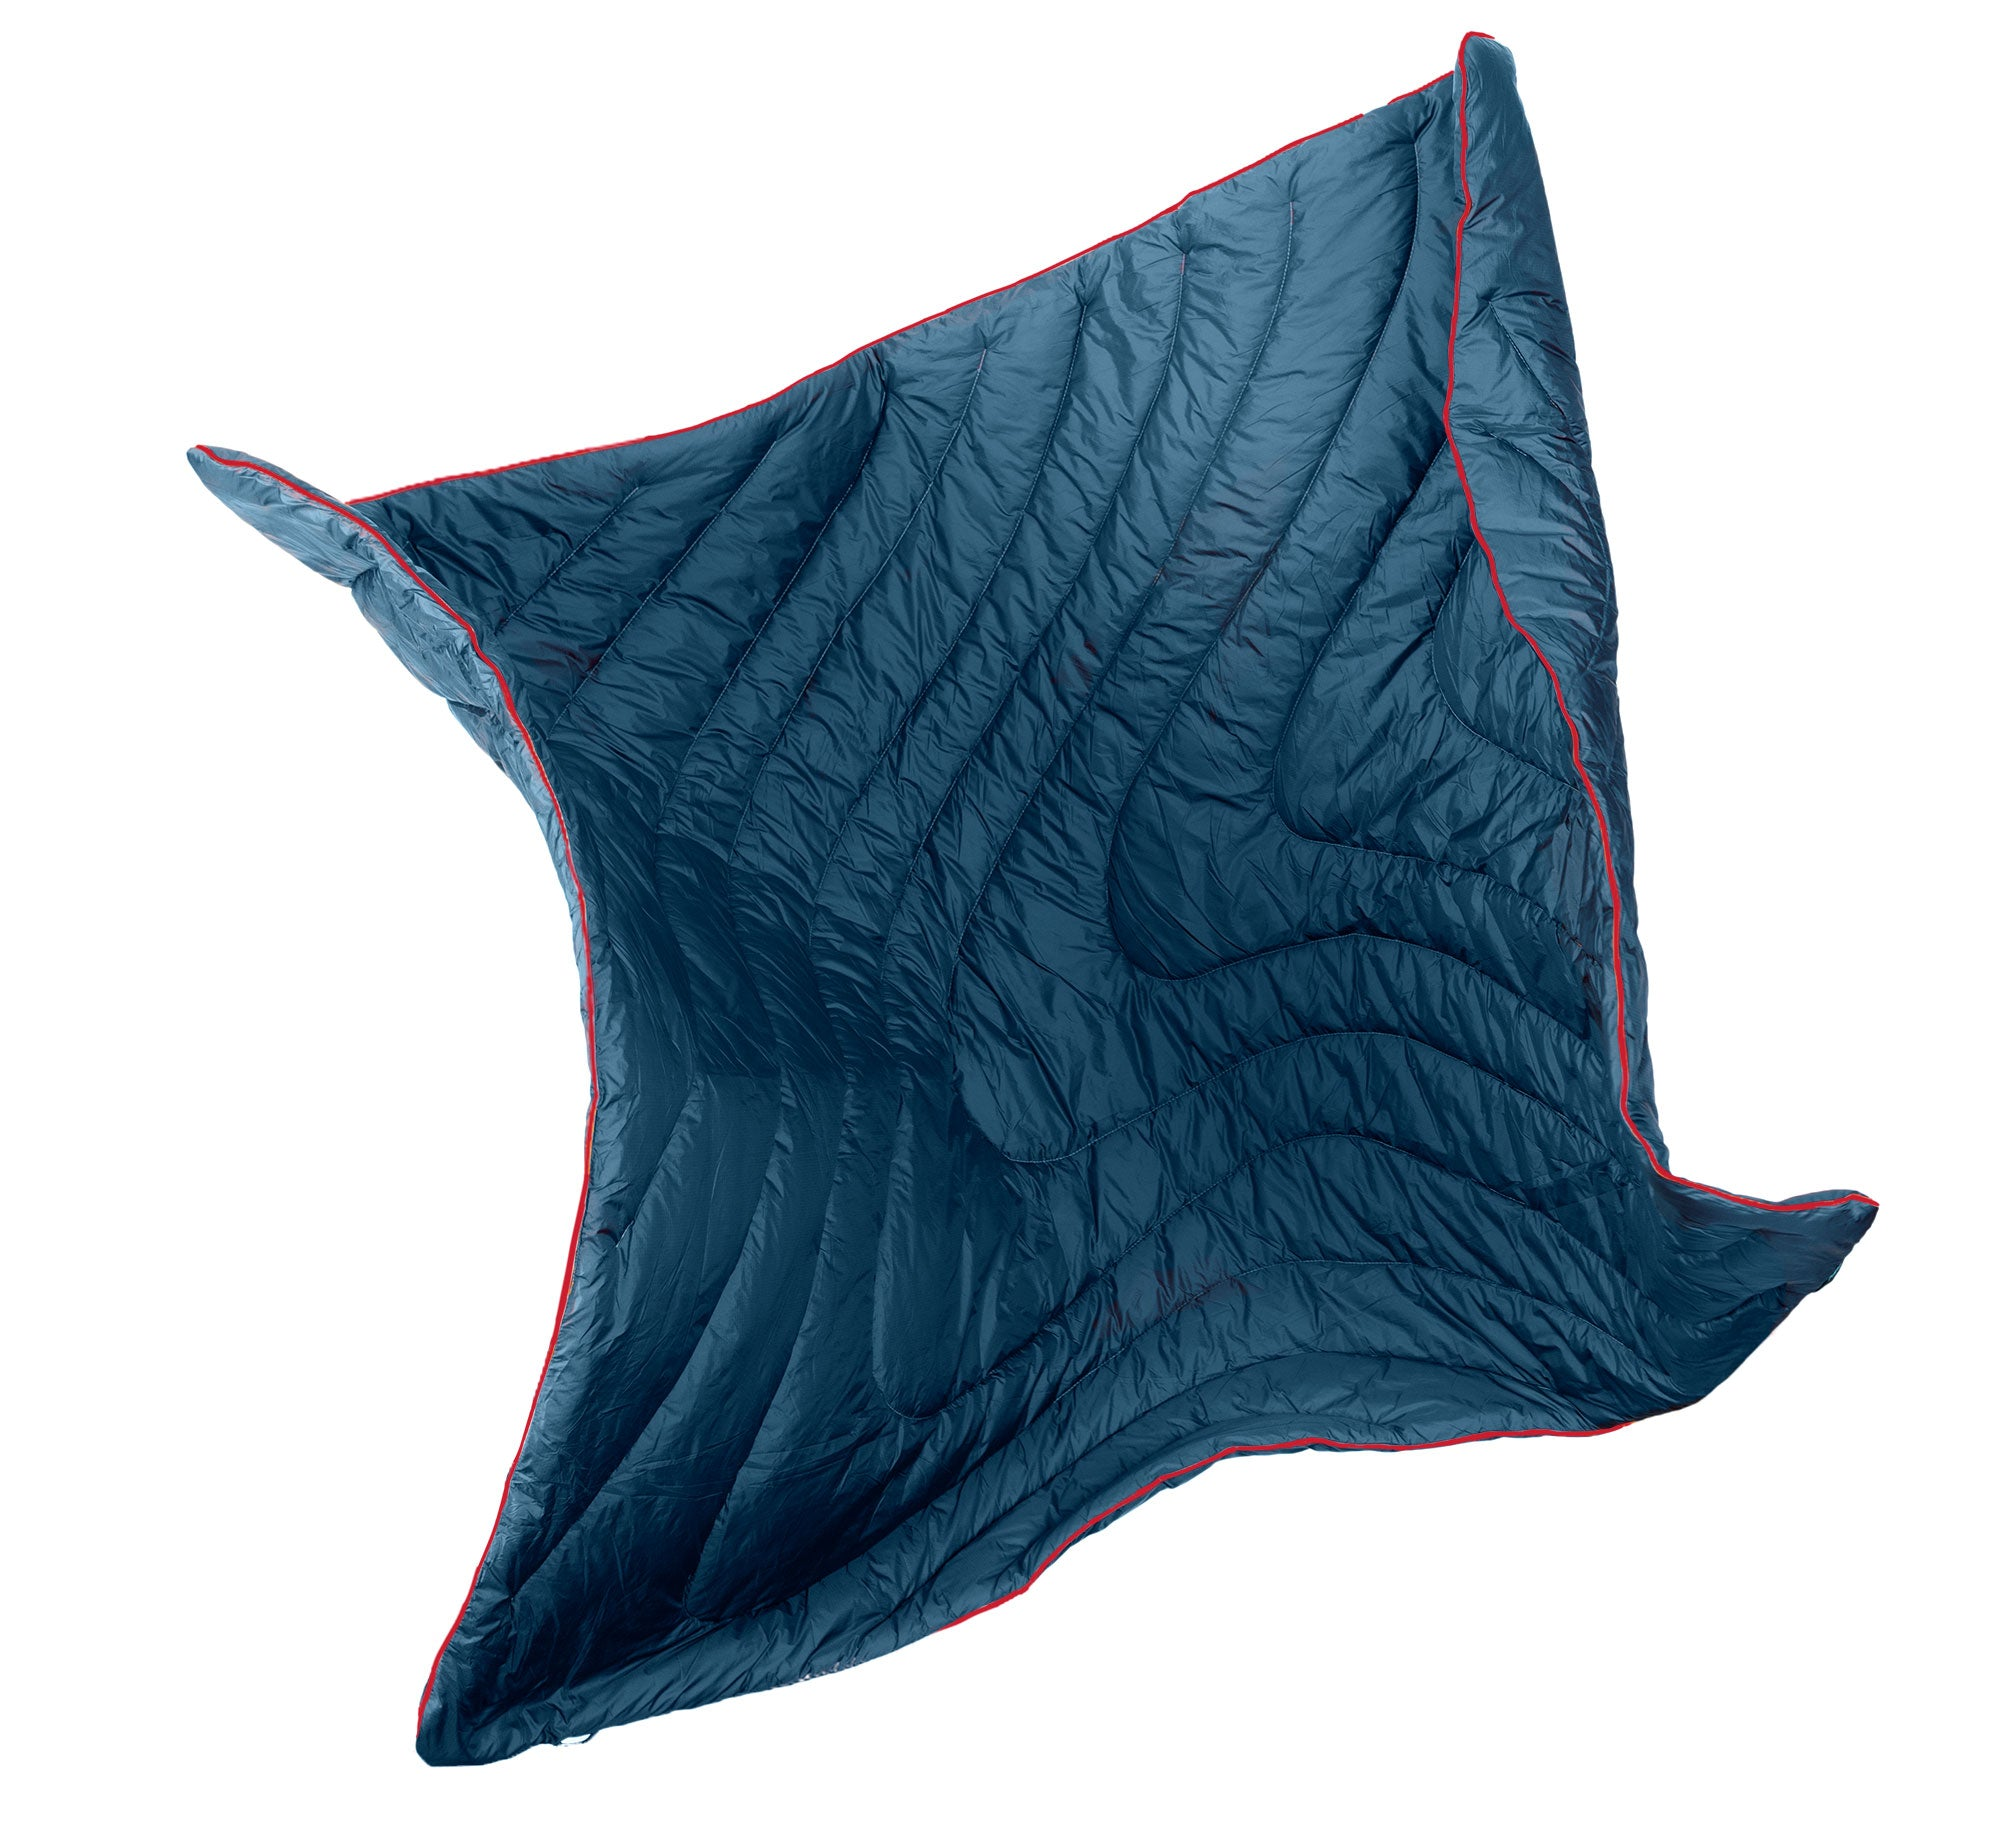 Original Puffy Blanket | Deepwater Blue | Rumpl